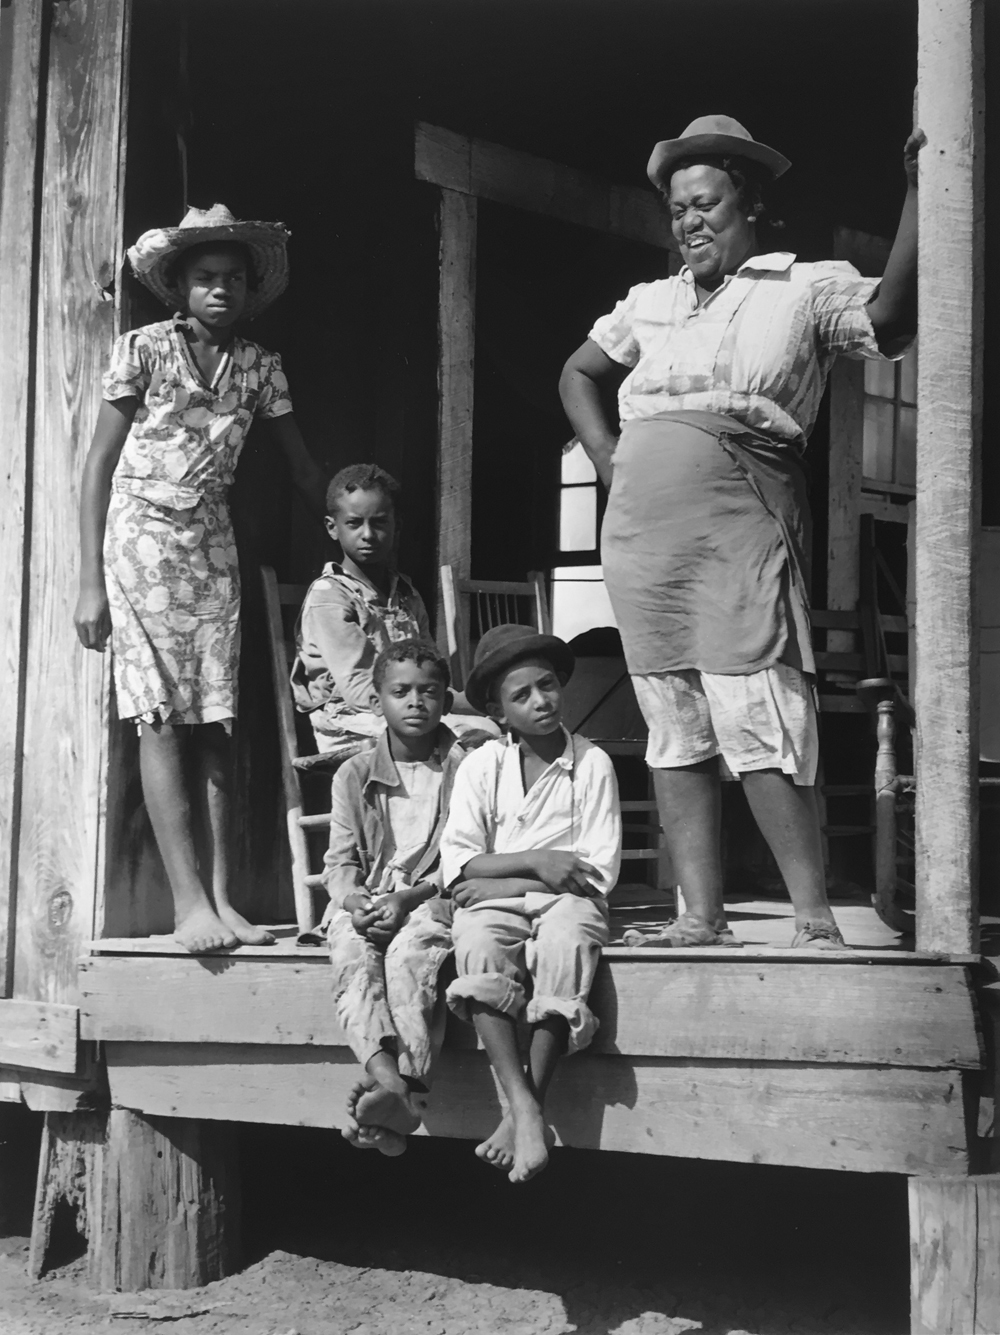 Marion Post Wolcott, Family on the porch of their home, Natchitoches, Louisiana, 1940, gelatin silver print, 14 x 11 inches, signed by the artist, $3000.